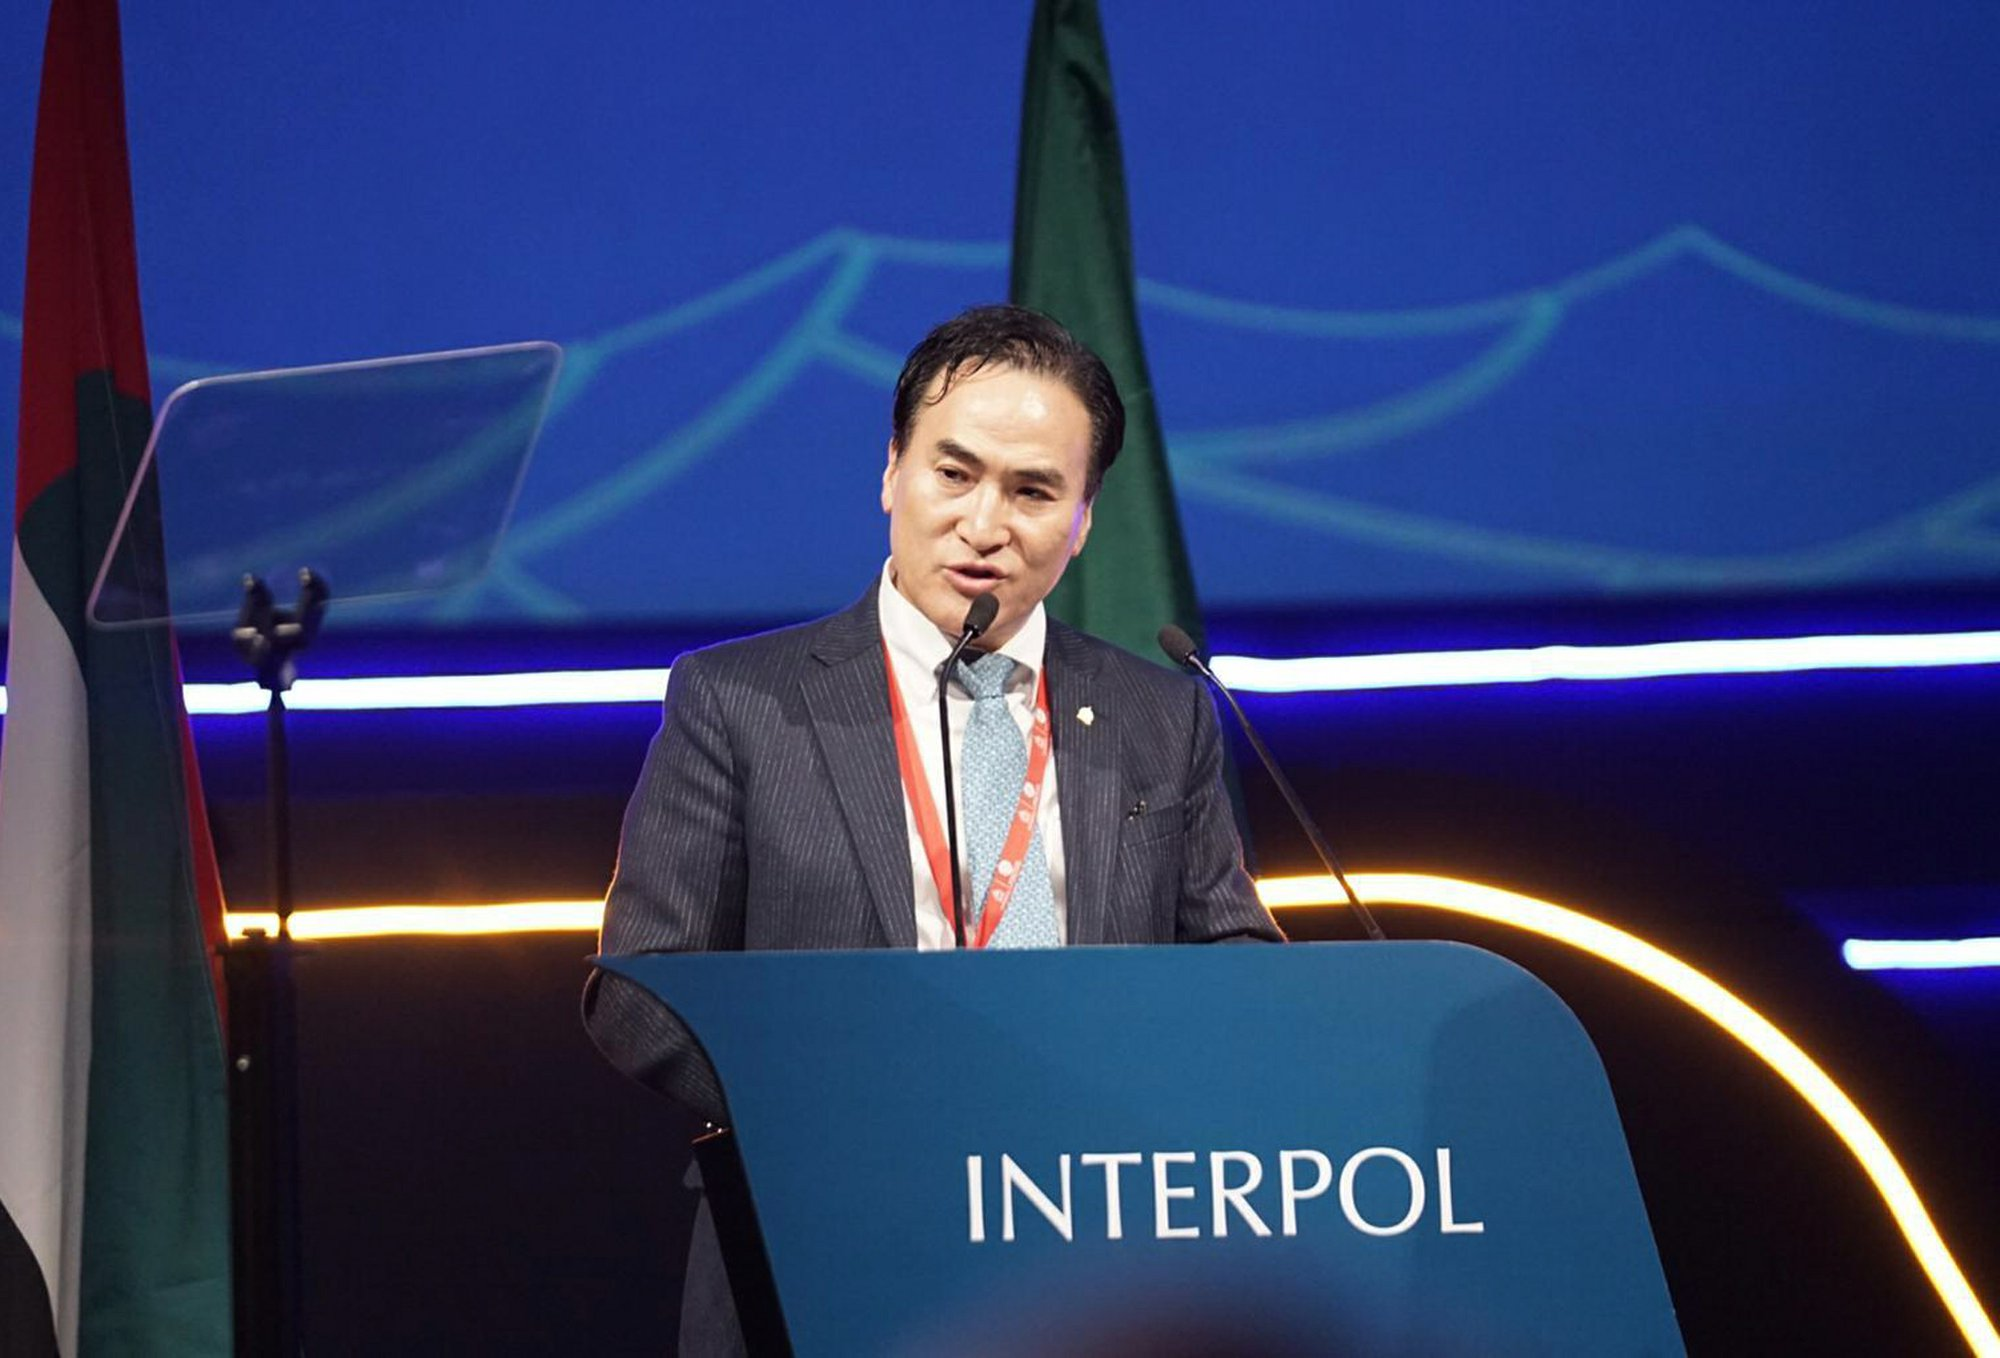 Interpol's flaws exposed in US-Russia fight over presidency